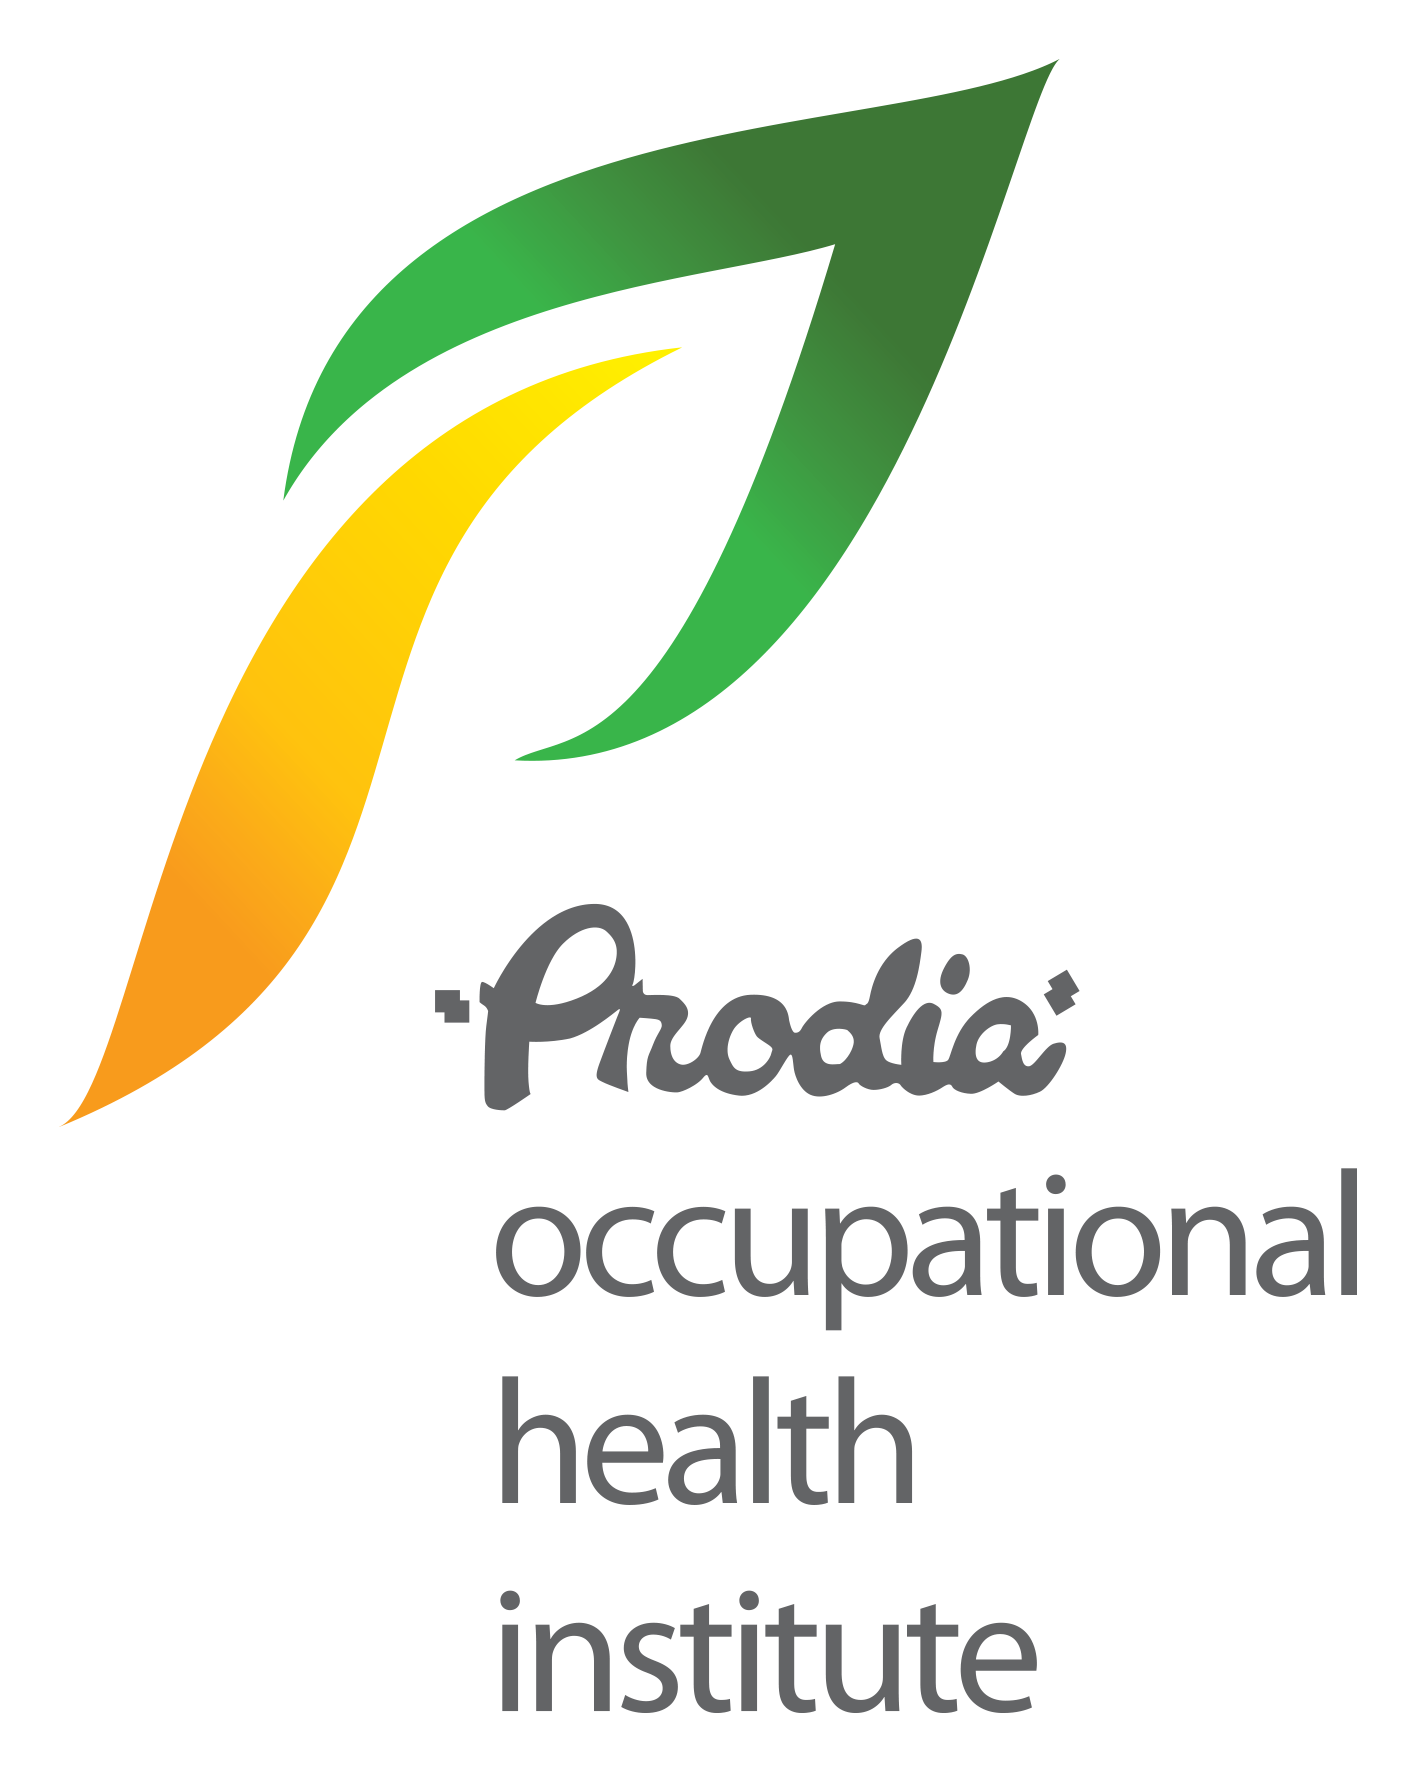 Prodia accupational health institue